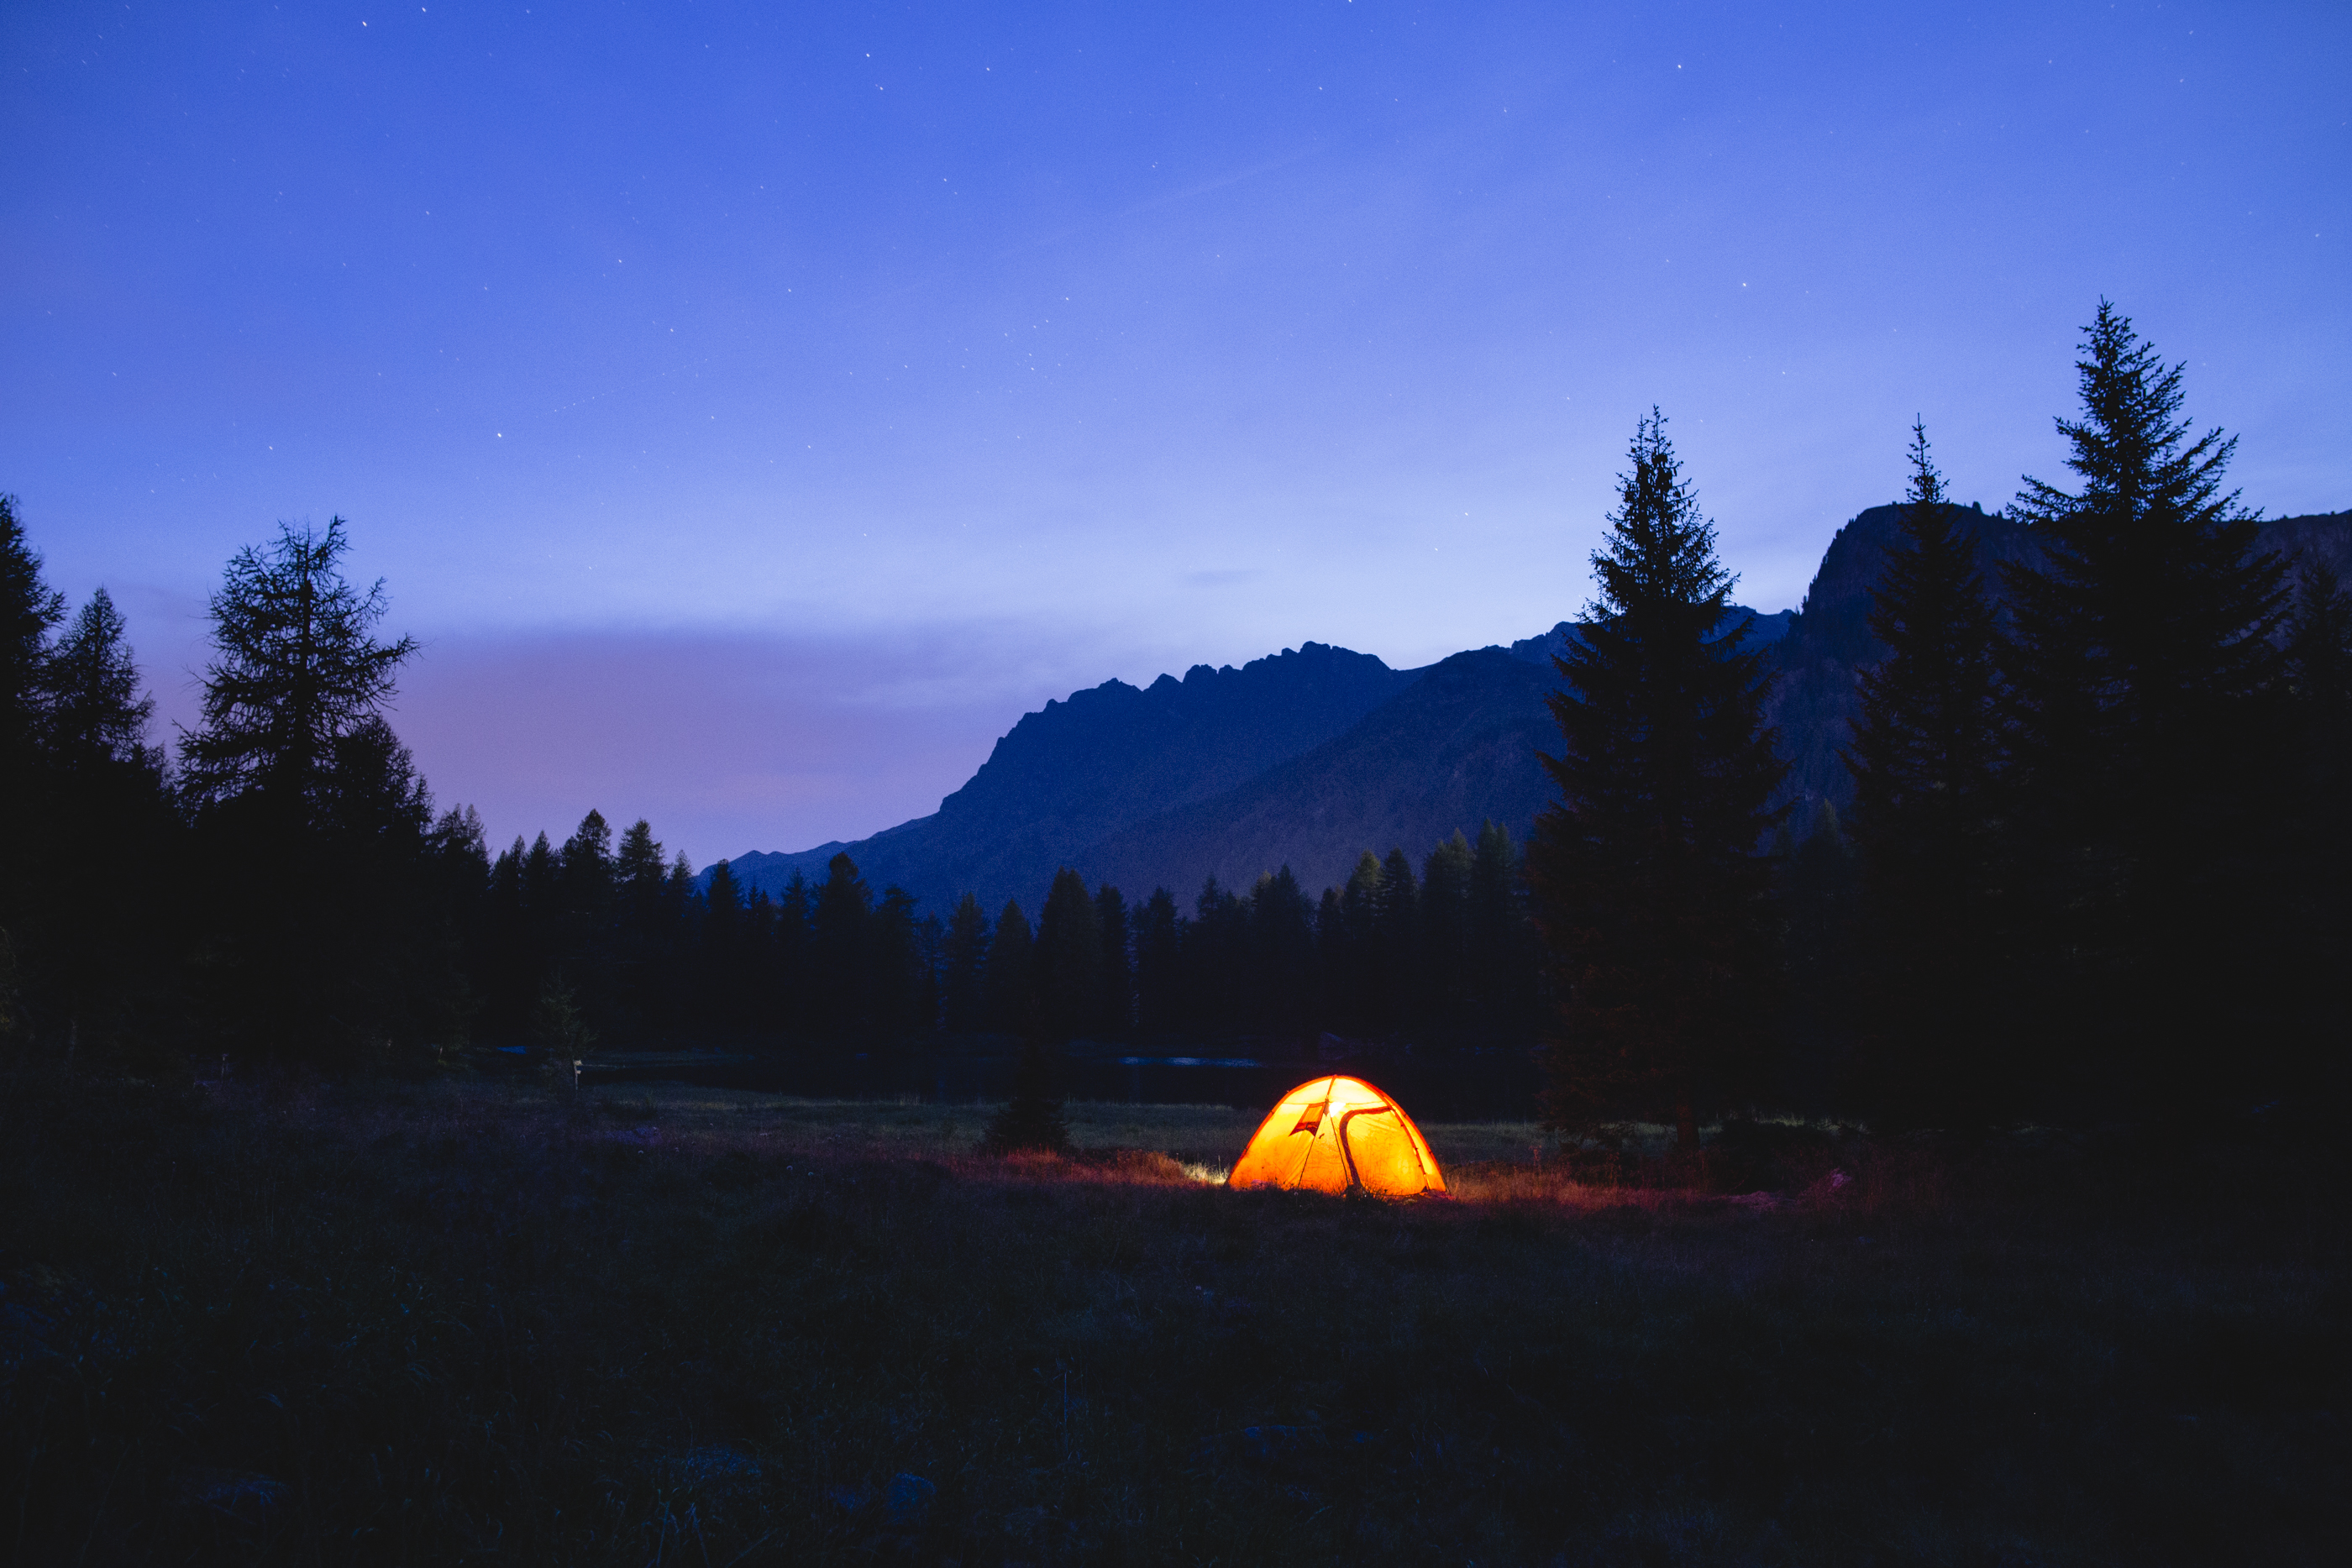 Night falls over a base camp